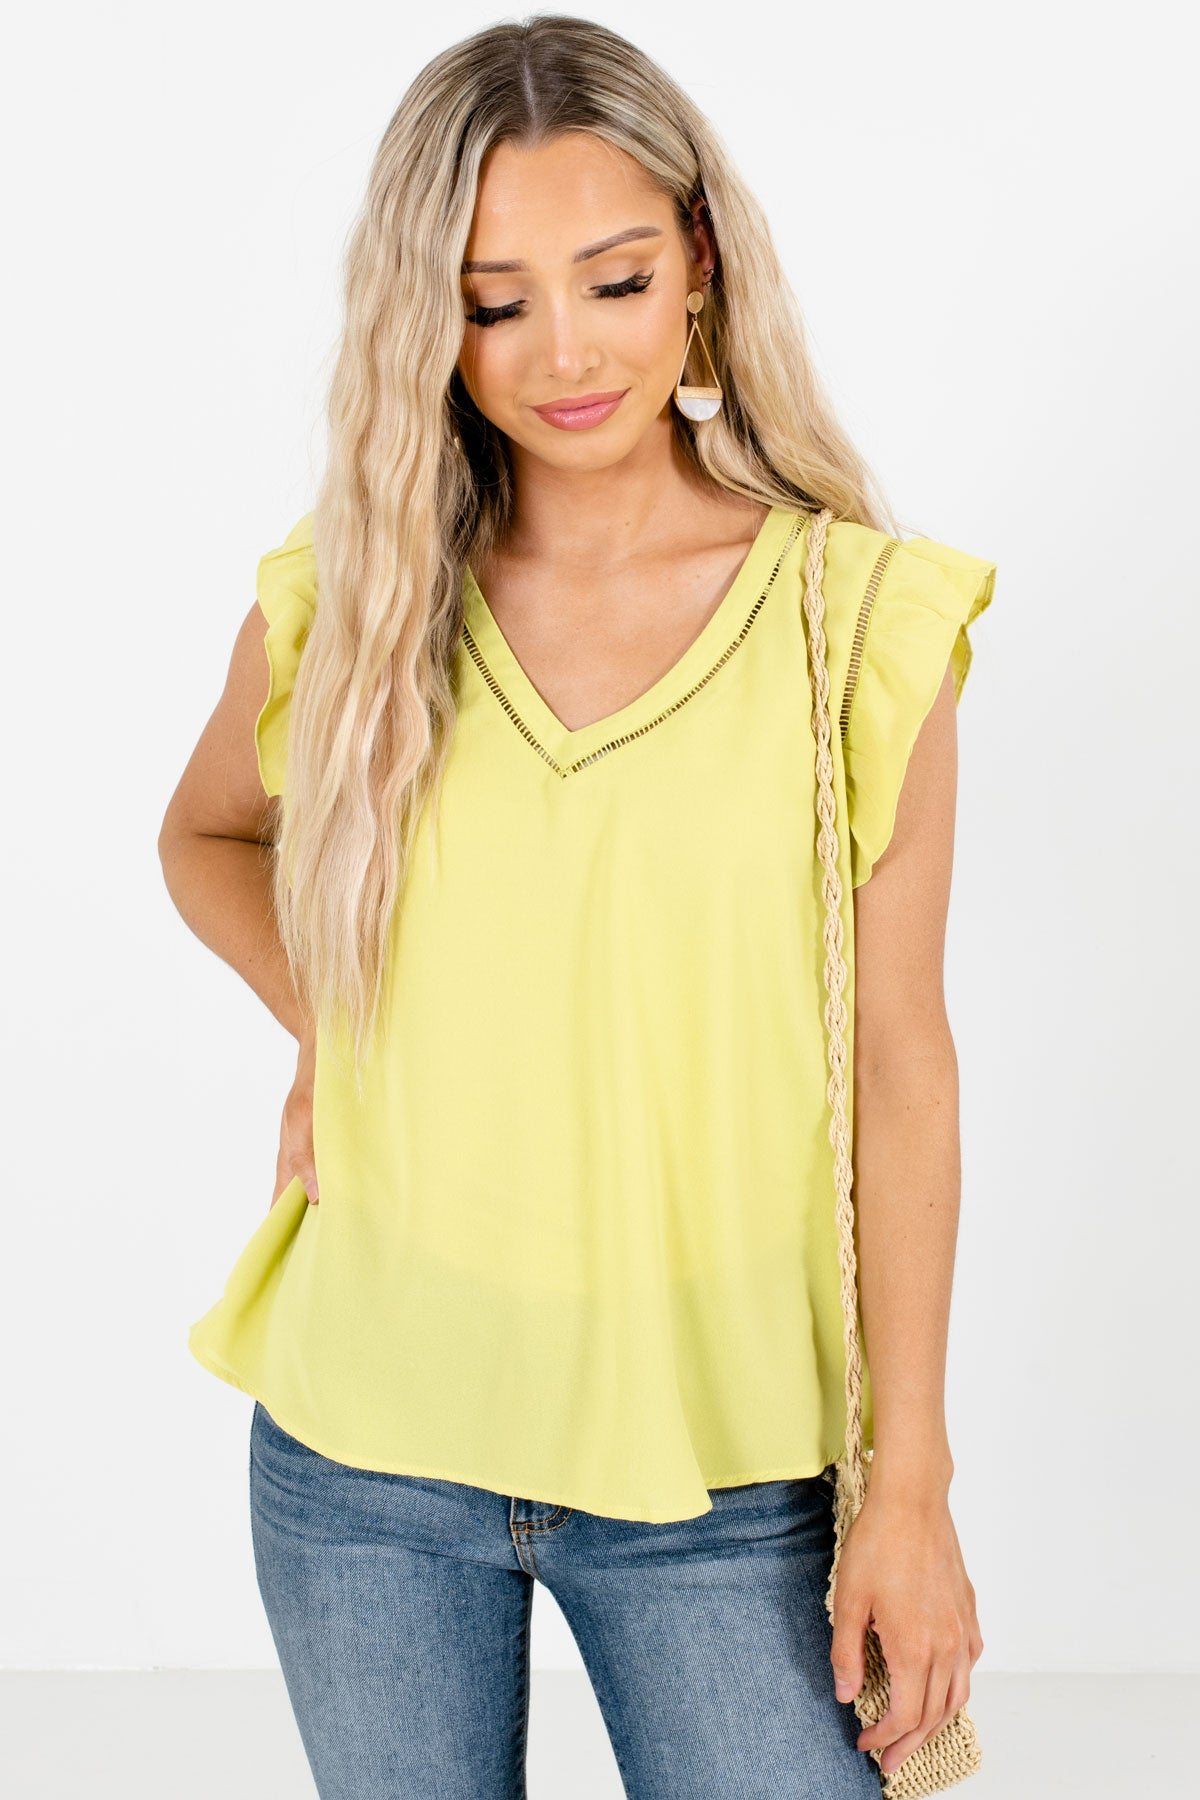 Green Flutter Sleeve Style Boutique Blouses for Women